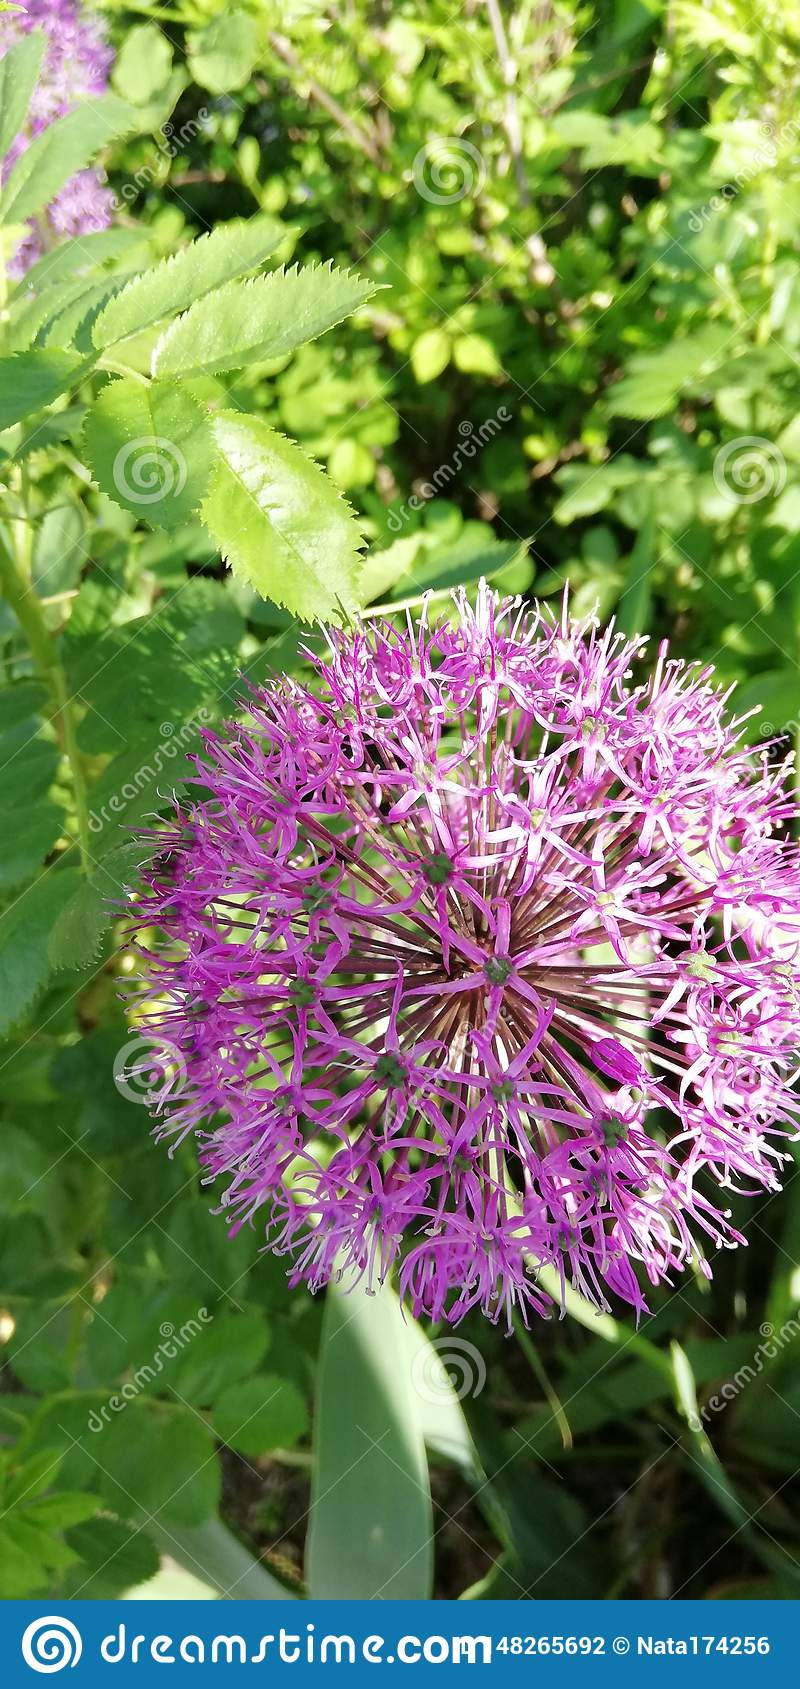 Light and shadow on openwork balloons of purple inflorescences of decorative garlic against the background of summer grass. Summer